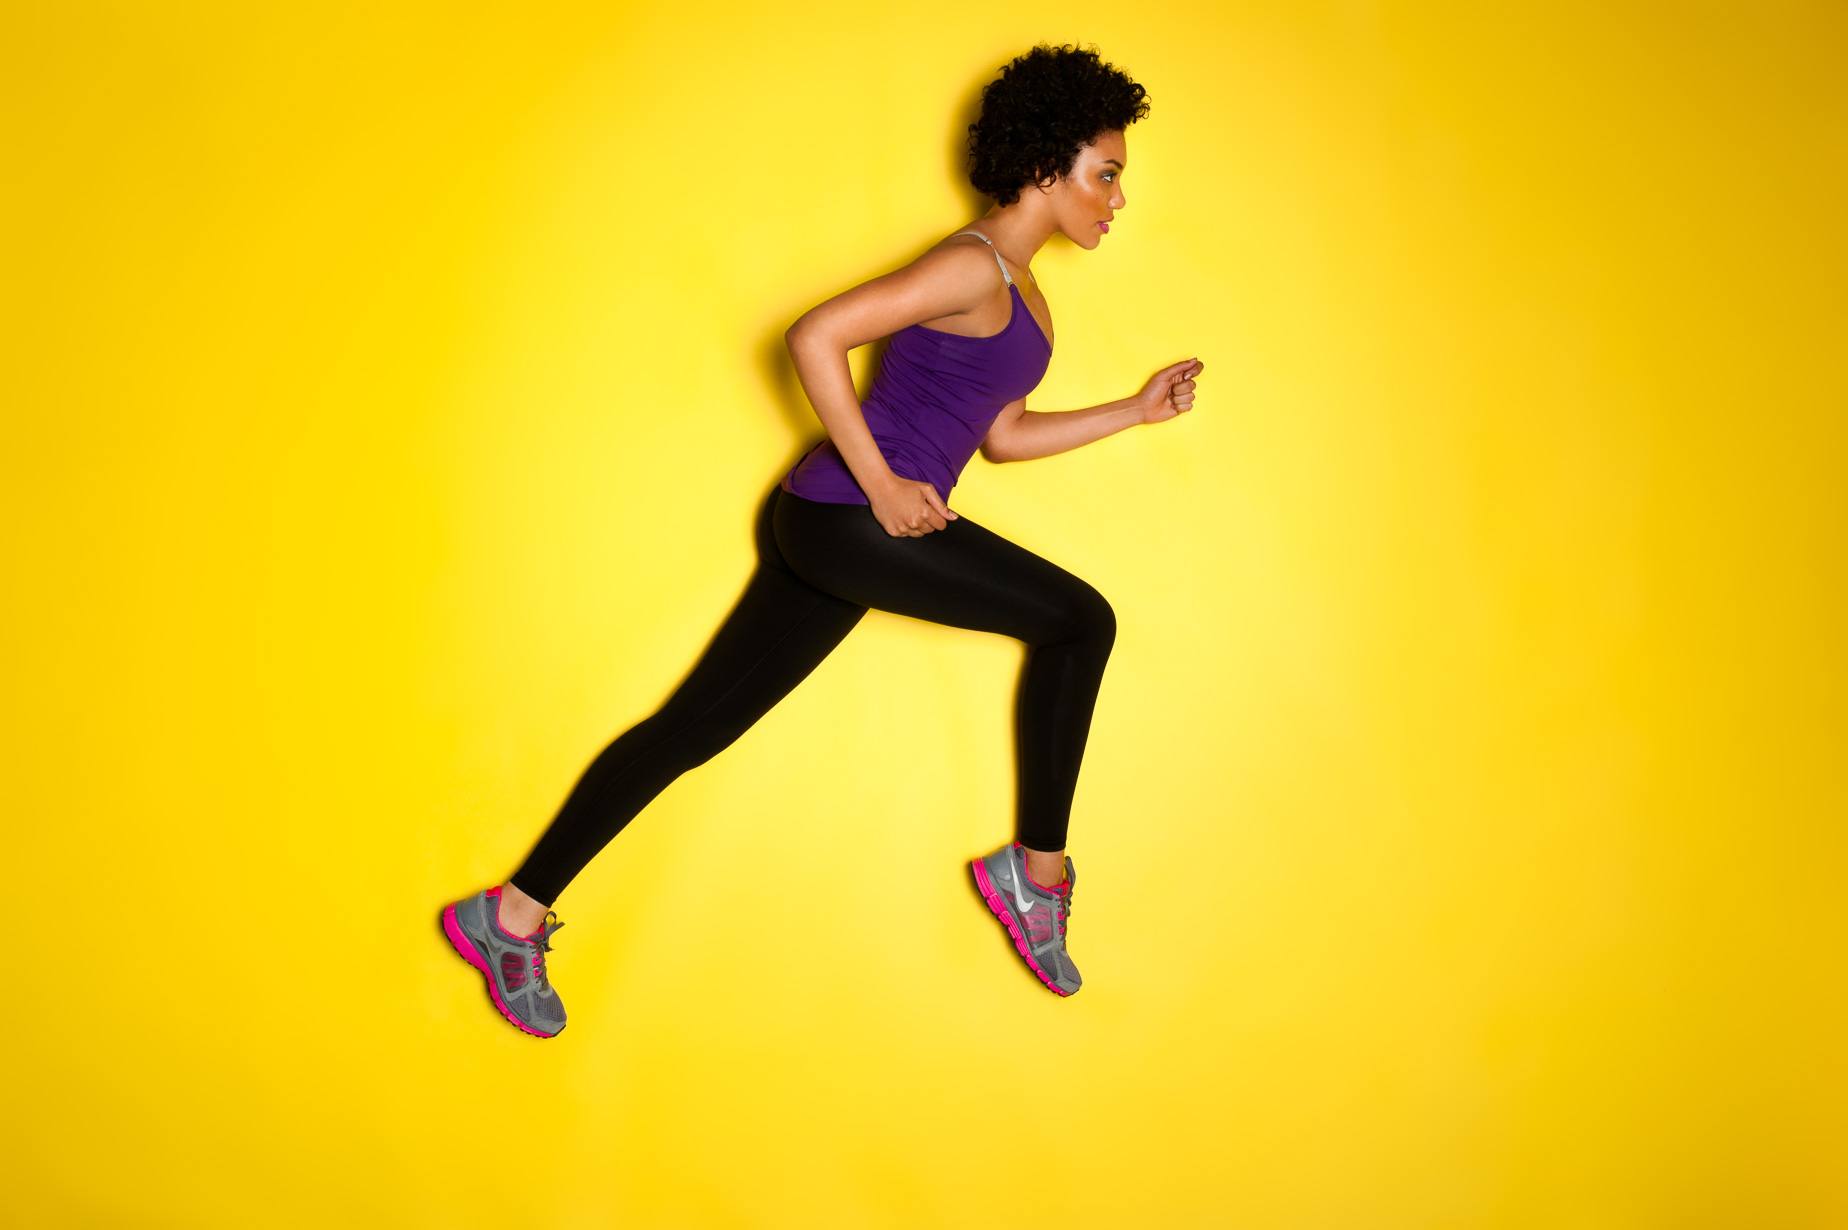 A color image of a woman wearing athletic wear running on a yellow background by Jeffrey Scott French